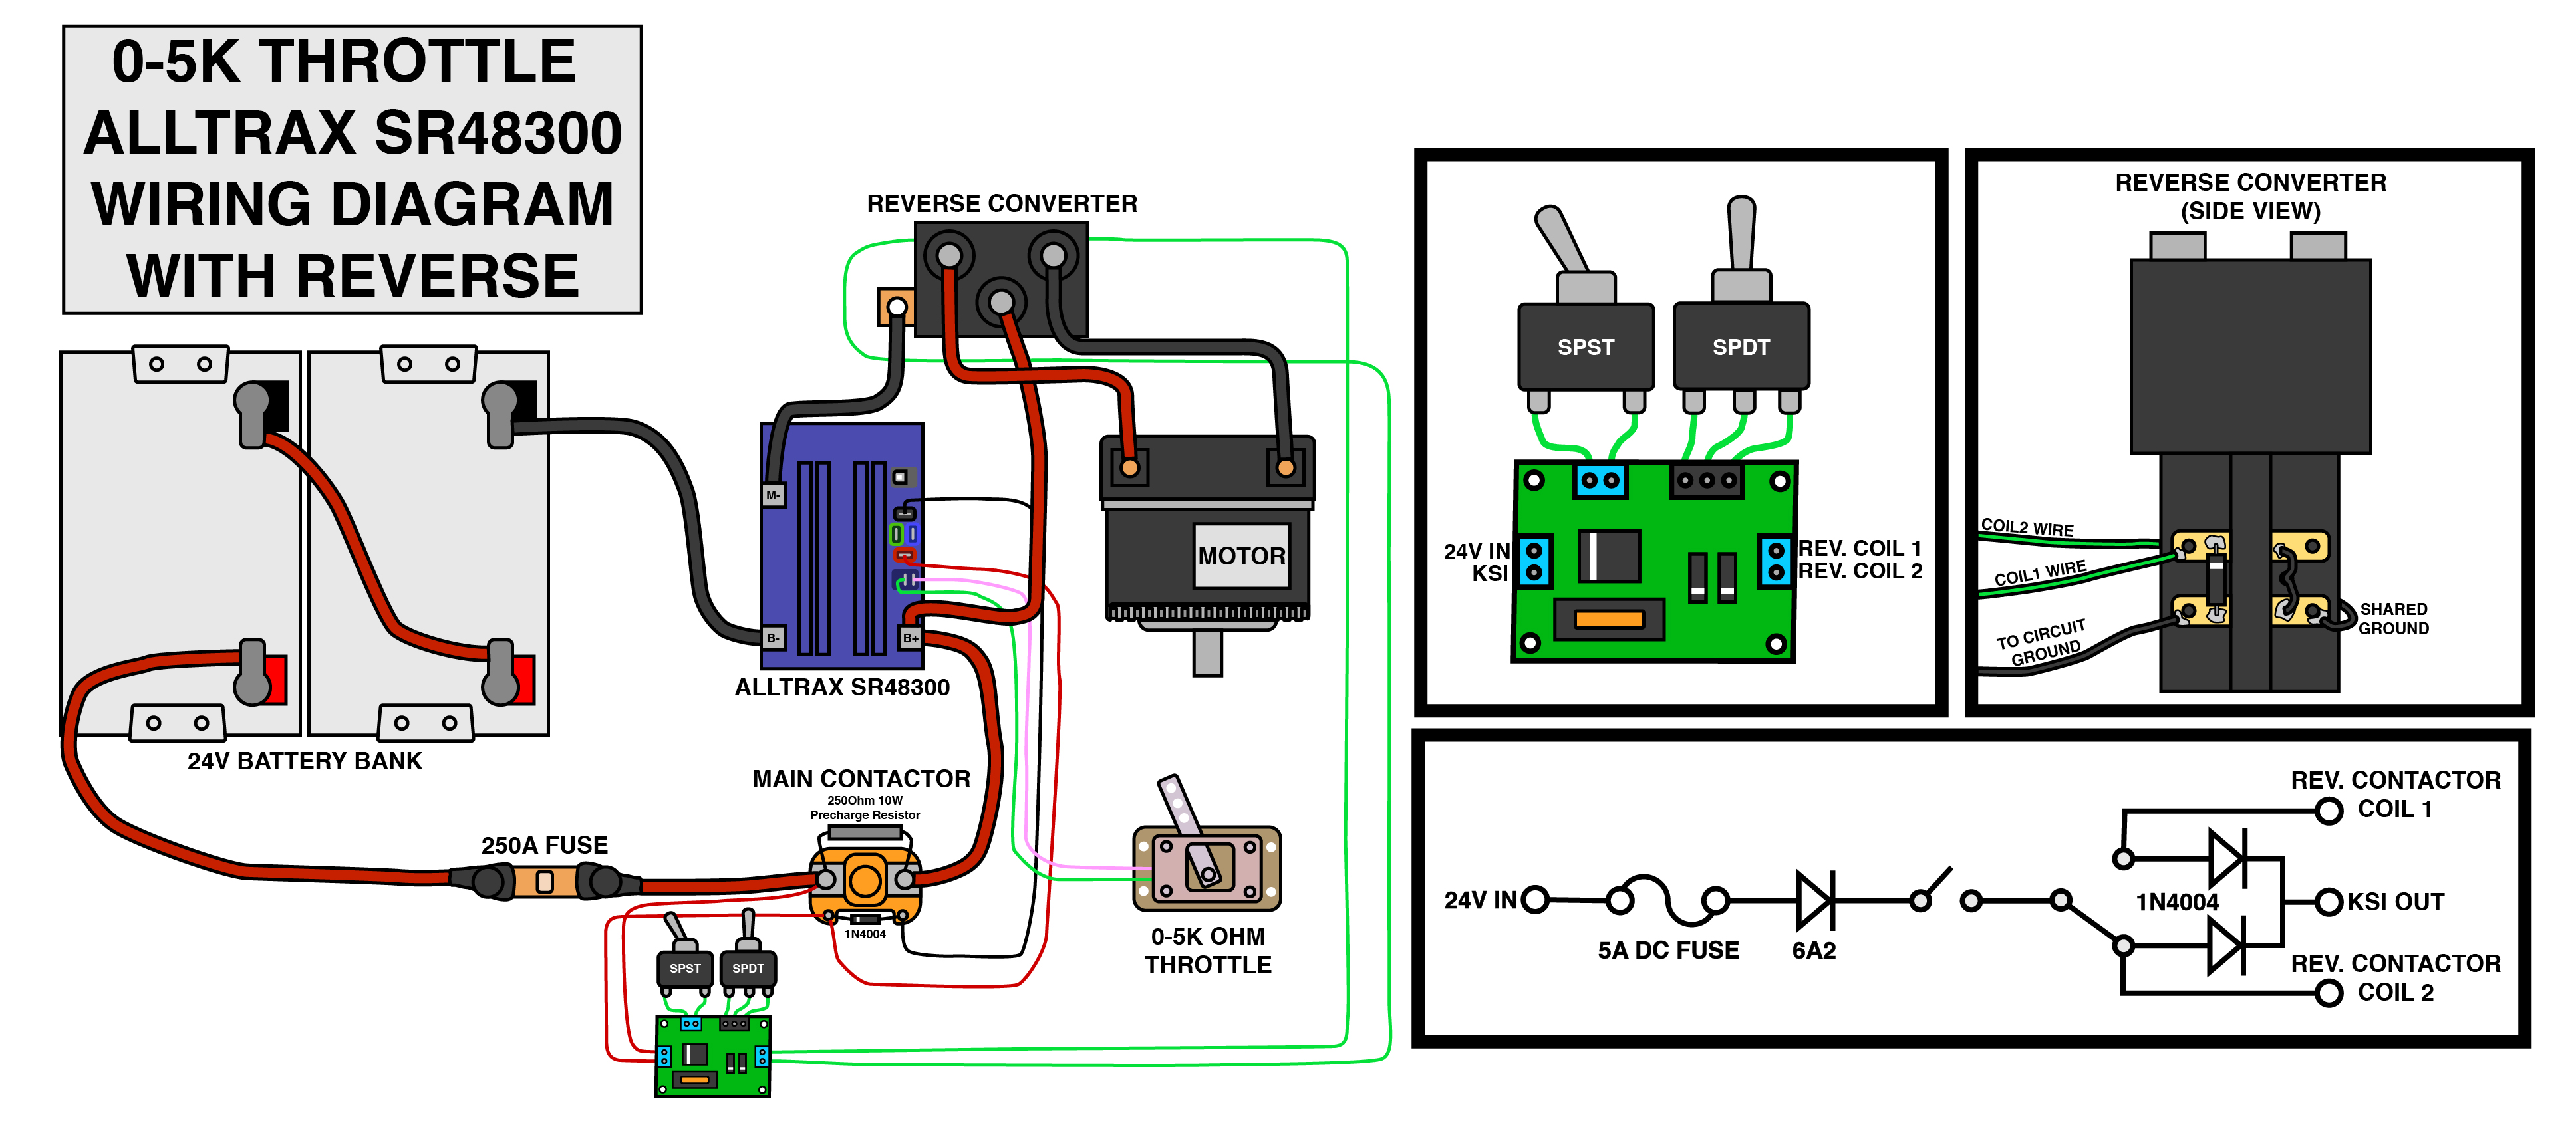 F4OTI2JJ9EH3IVX viking refrigerator wiring diagram wiring diagram byblank  at mifinder.co